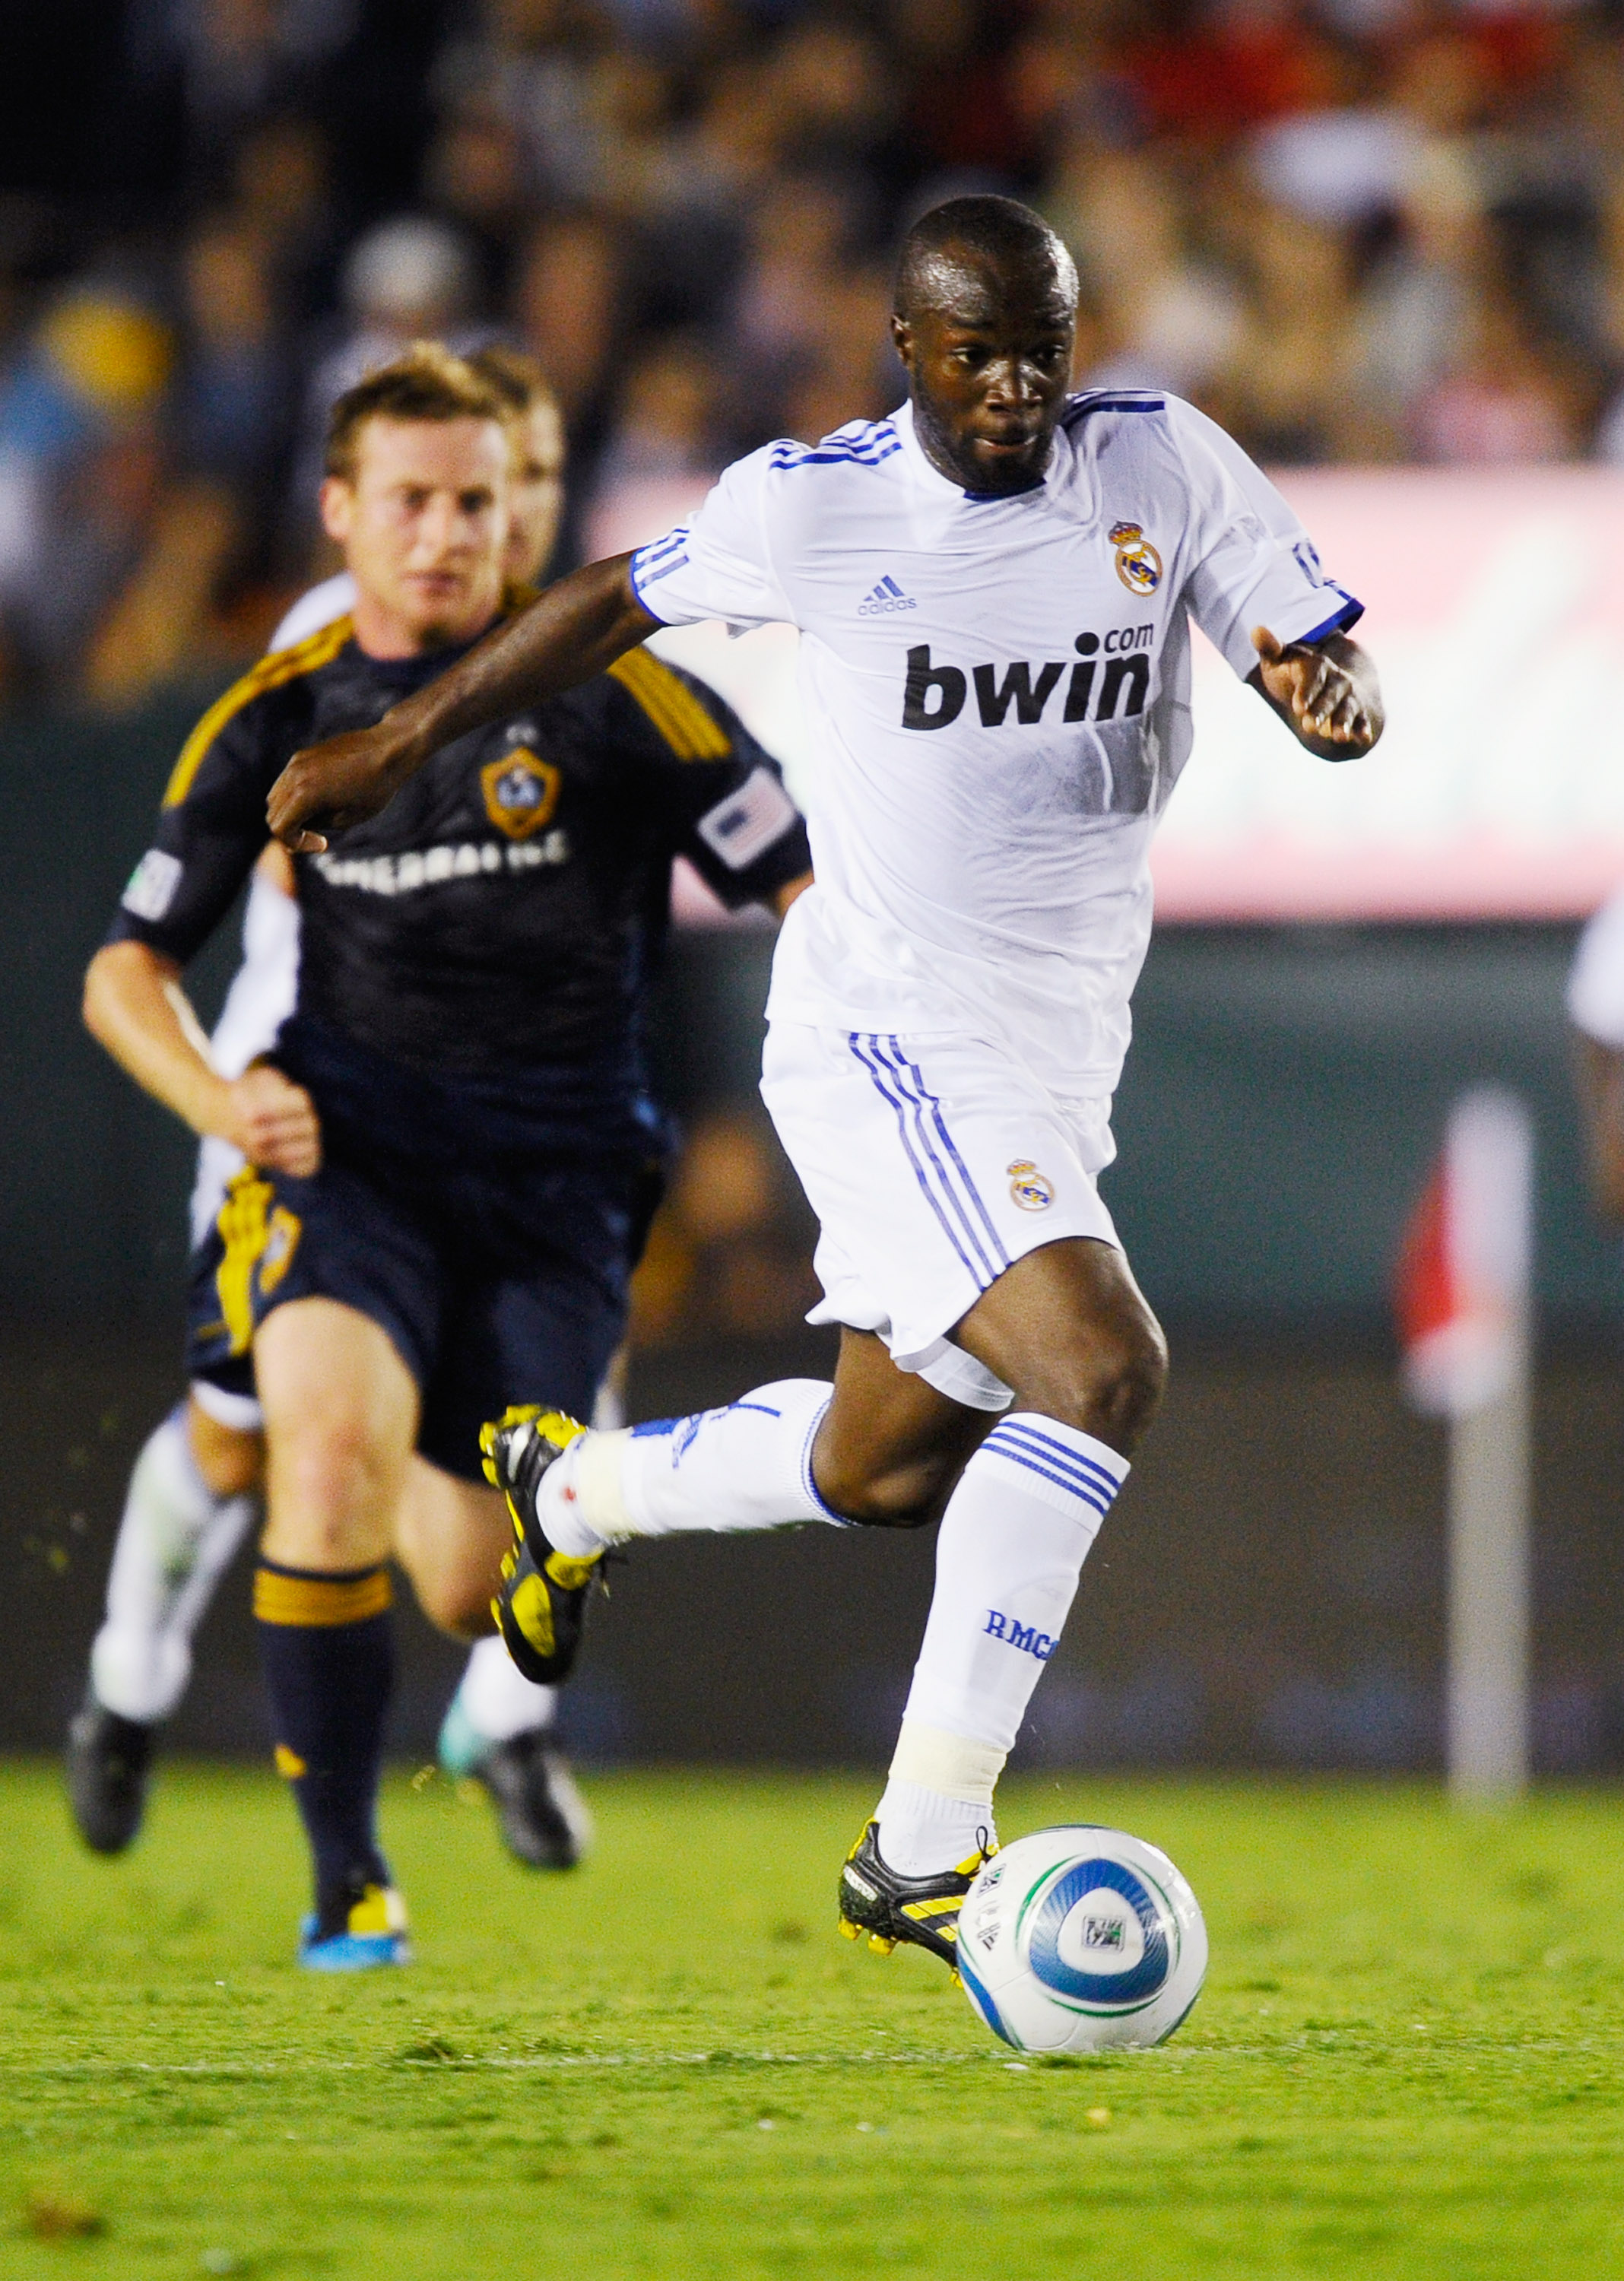 PASADENA, CA - AUGUST 07: Lassana Diarra #10 of Real Madrid during the pre-season friendly soccer match against Los Angeles Galaxy on August 7, 2010 at the Rose Bowl in Pasadena, California. Real Madrid will travel back to Spain after the soccer match com